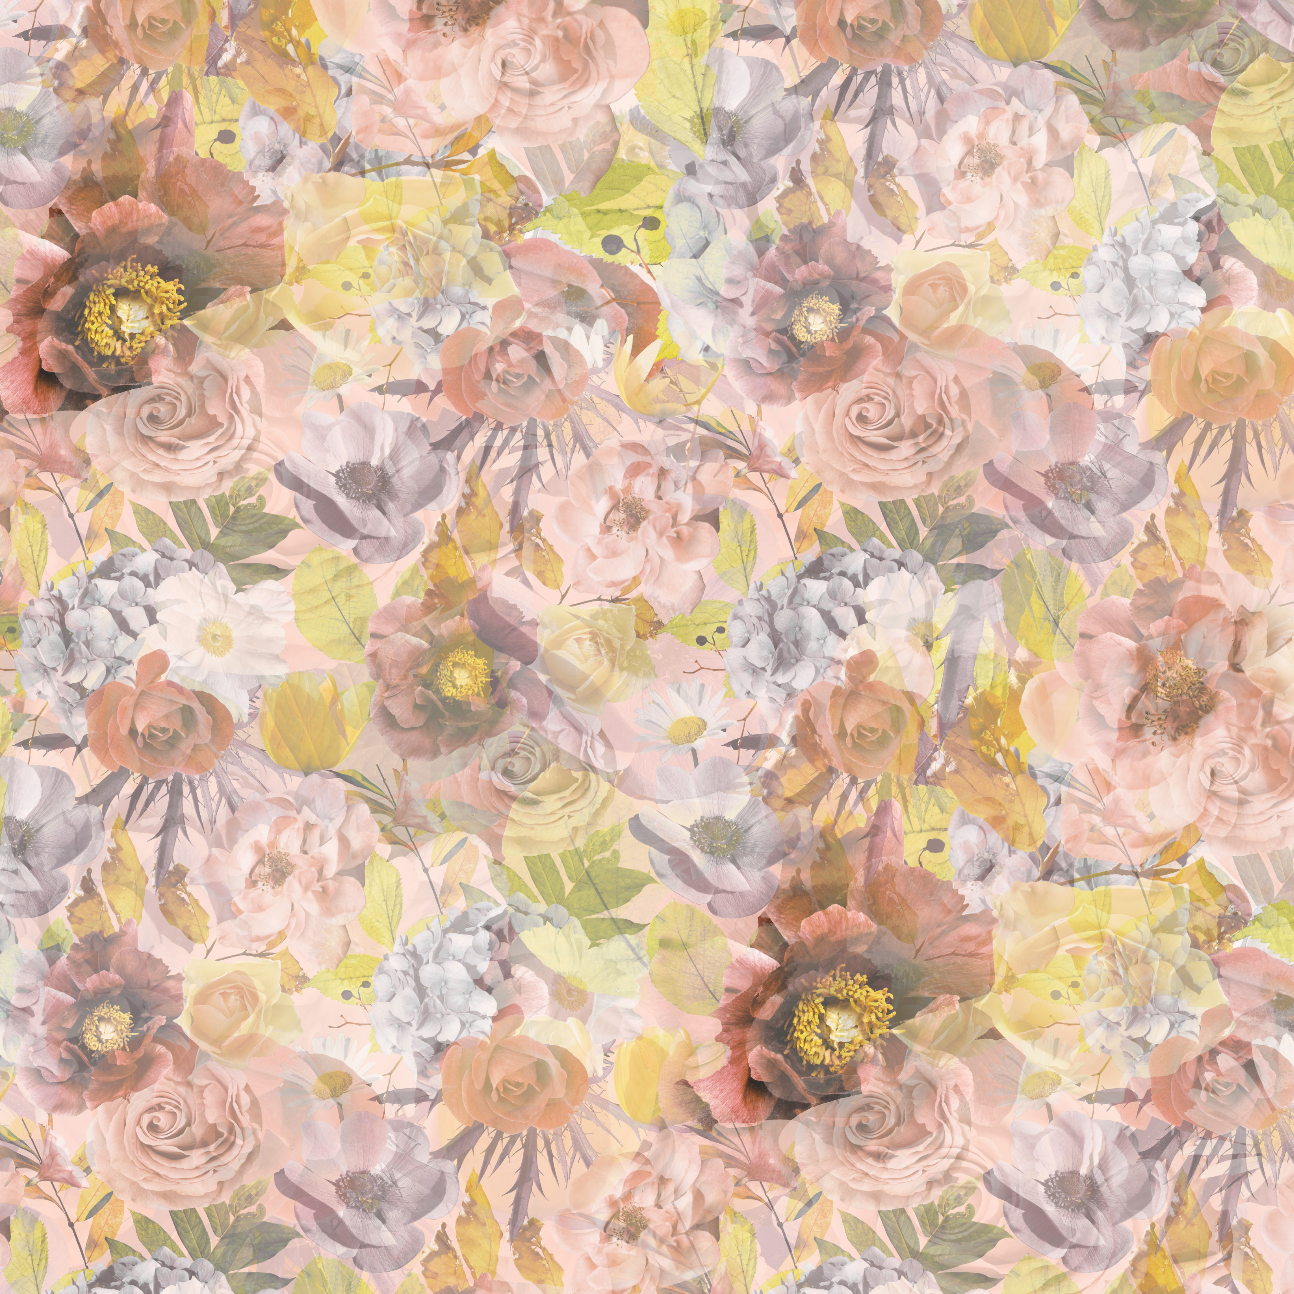 PRE ORDER - Autumn Garden Pastel - Digital Fabric Print